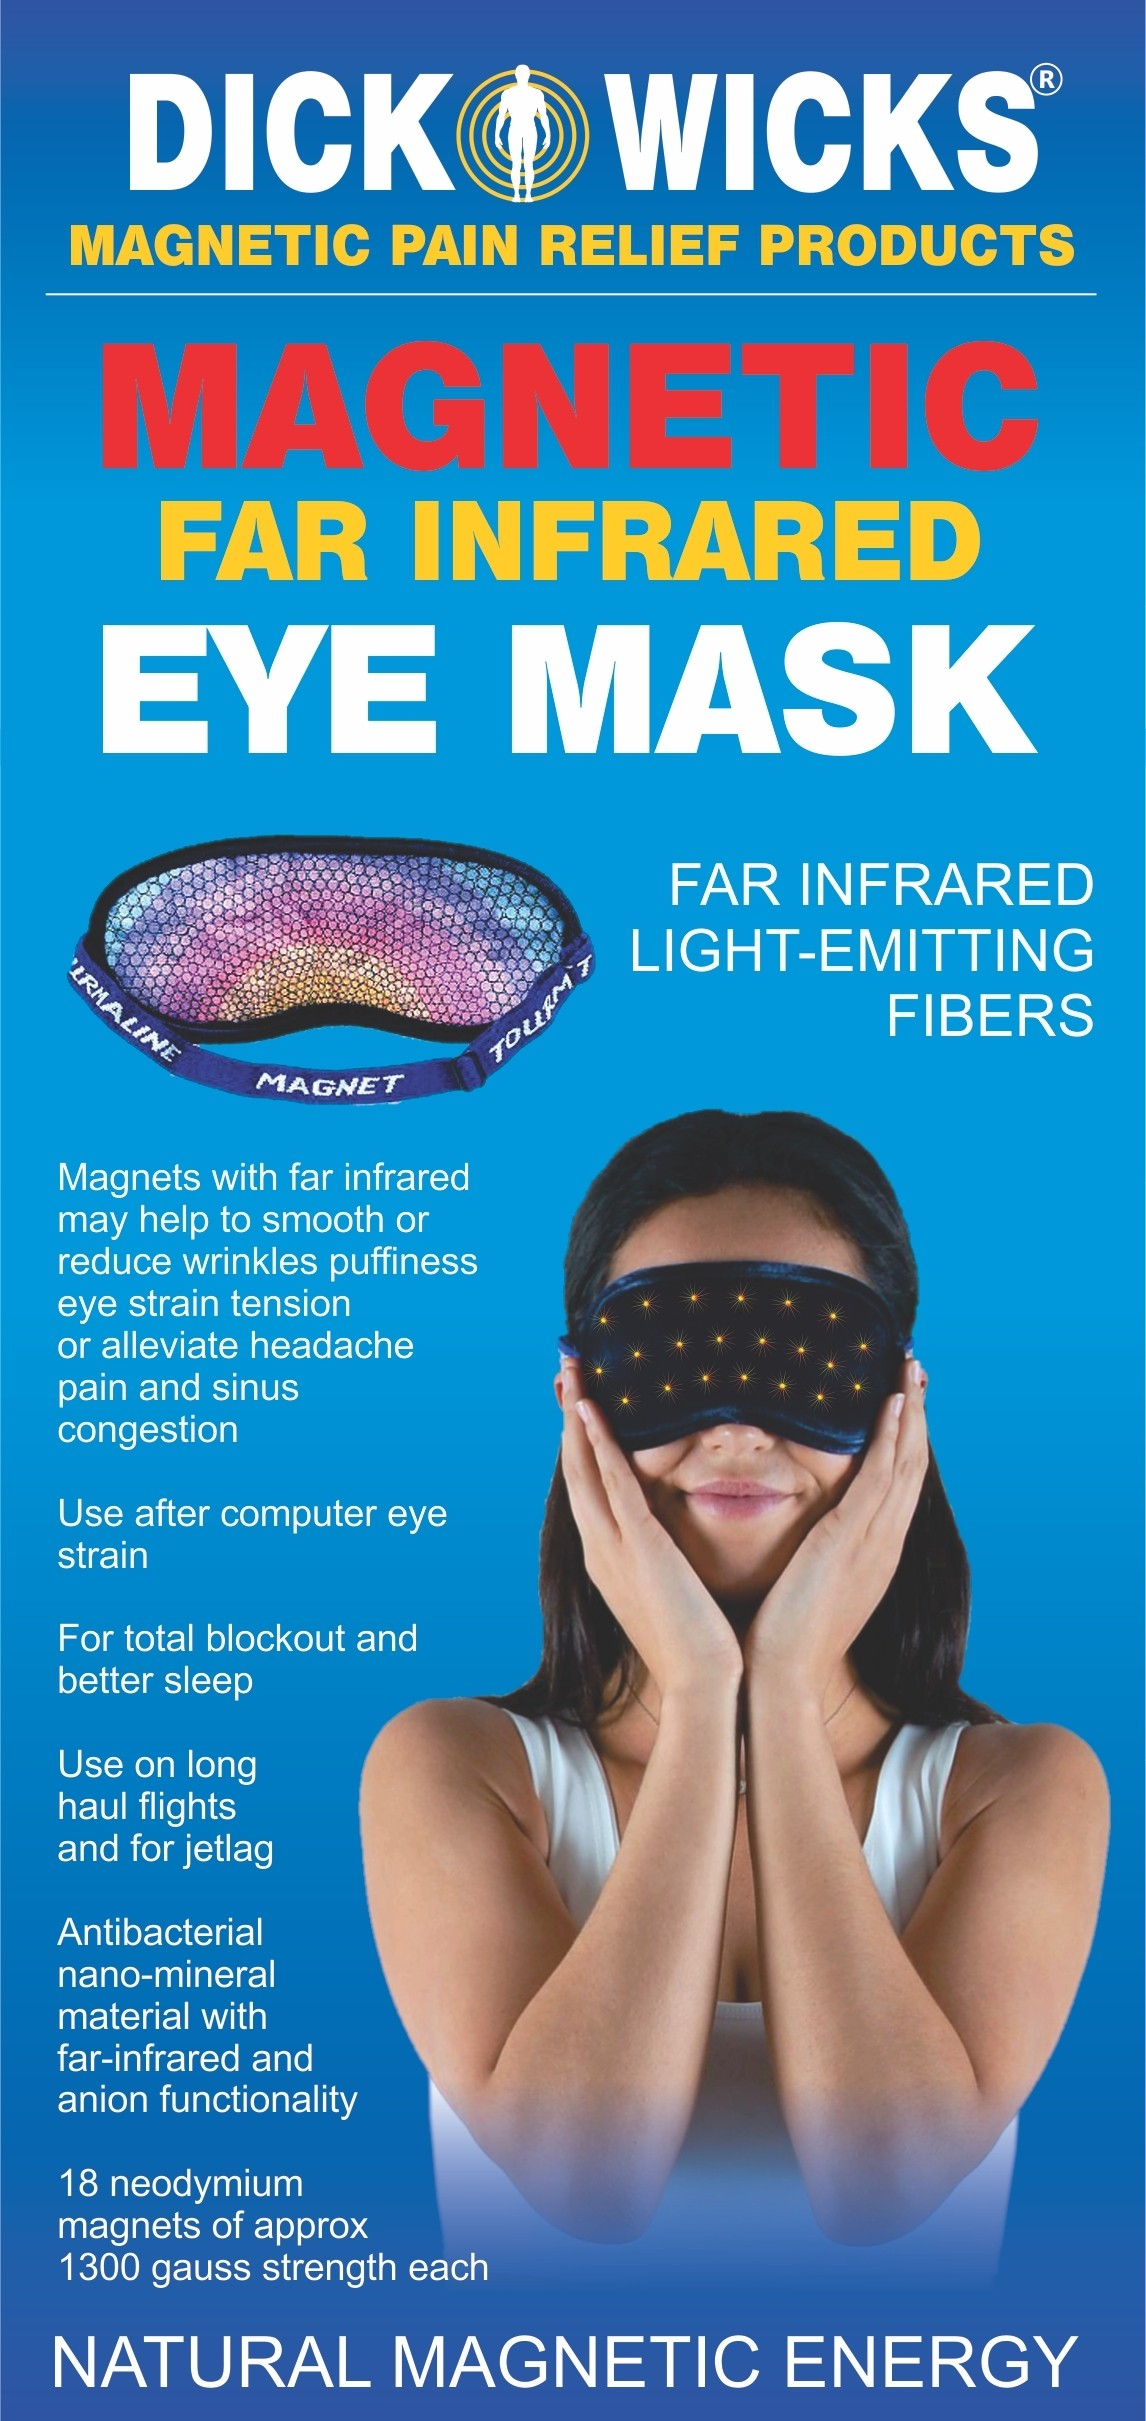 Dick Wicks Magnetic FAR Infrared Eye Mask